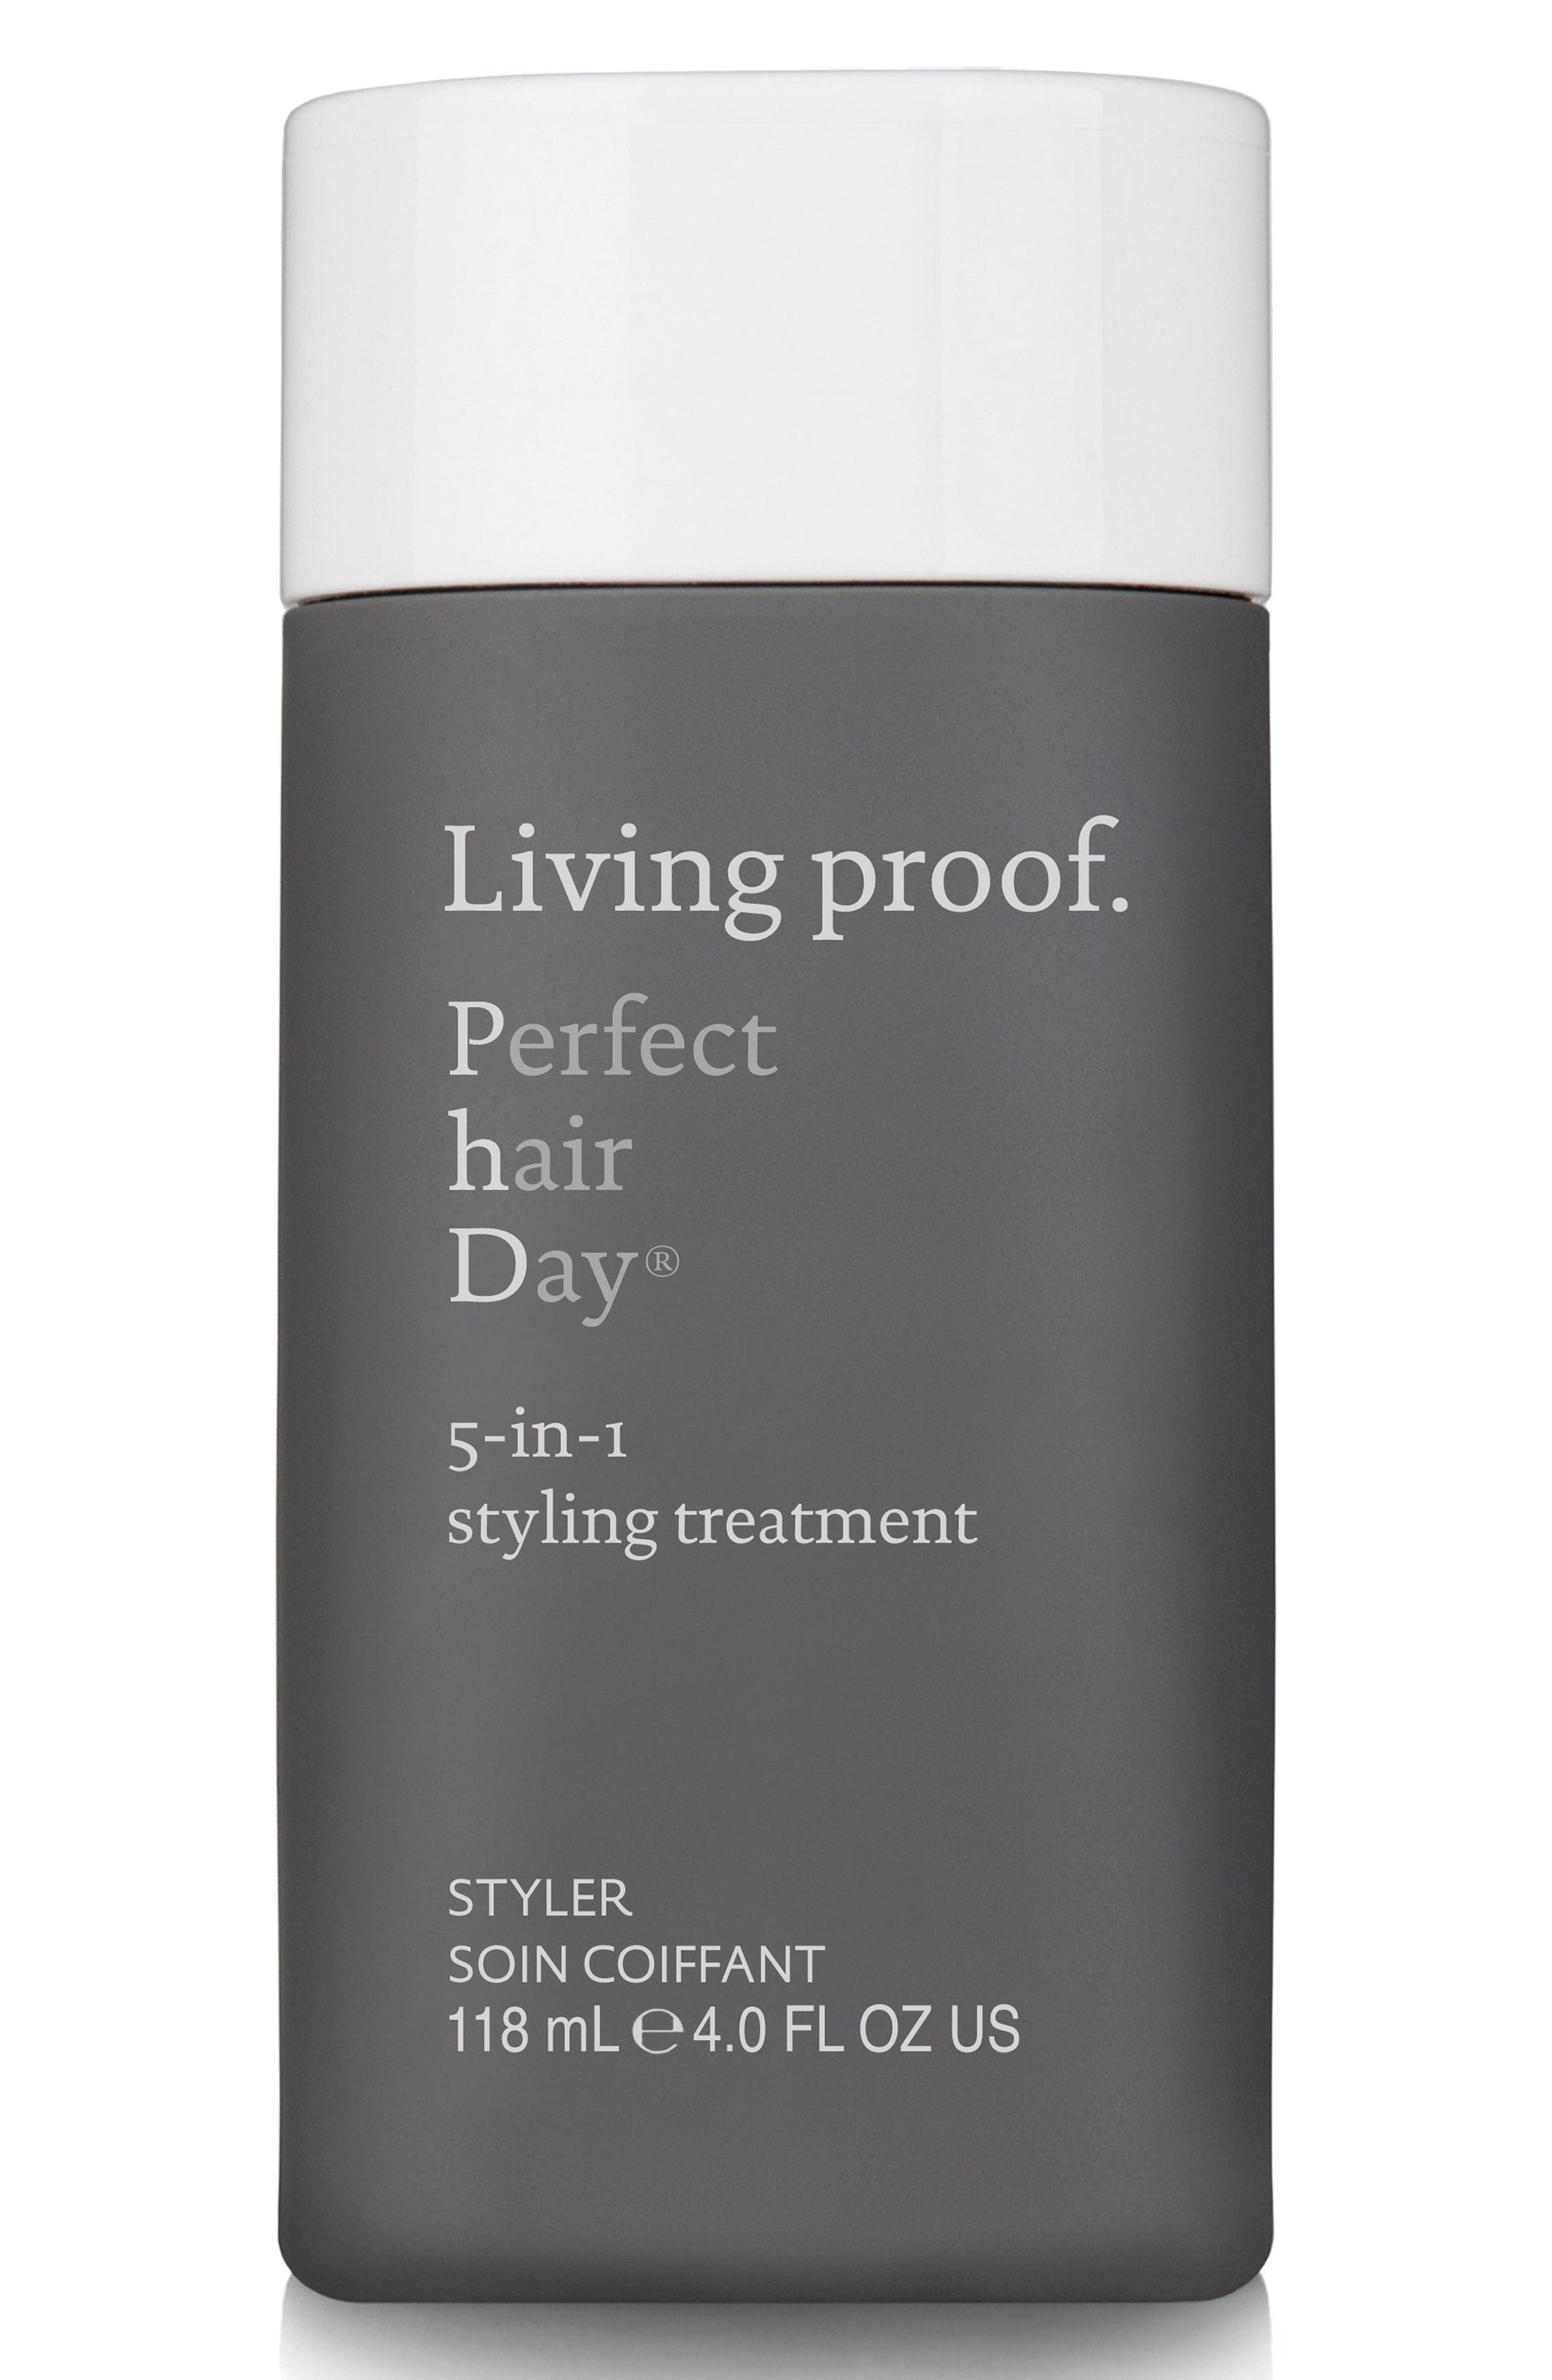 Alternate Image 1 Selected - Living proof® Perfect hair Day™ 5-in-1 Styling Treatment